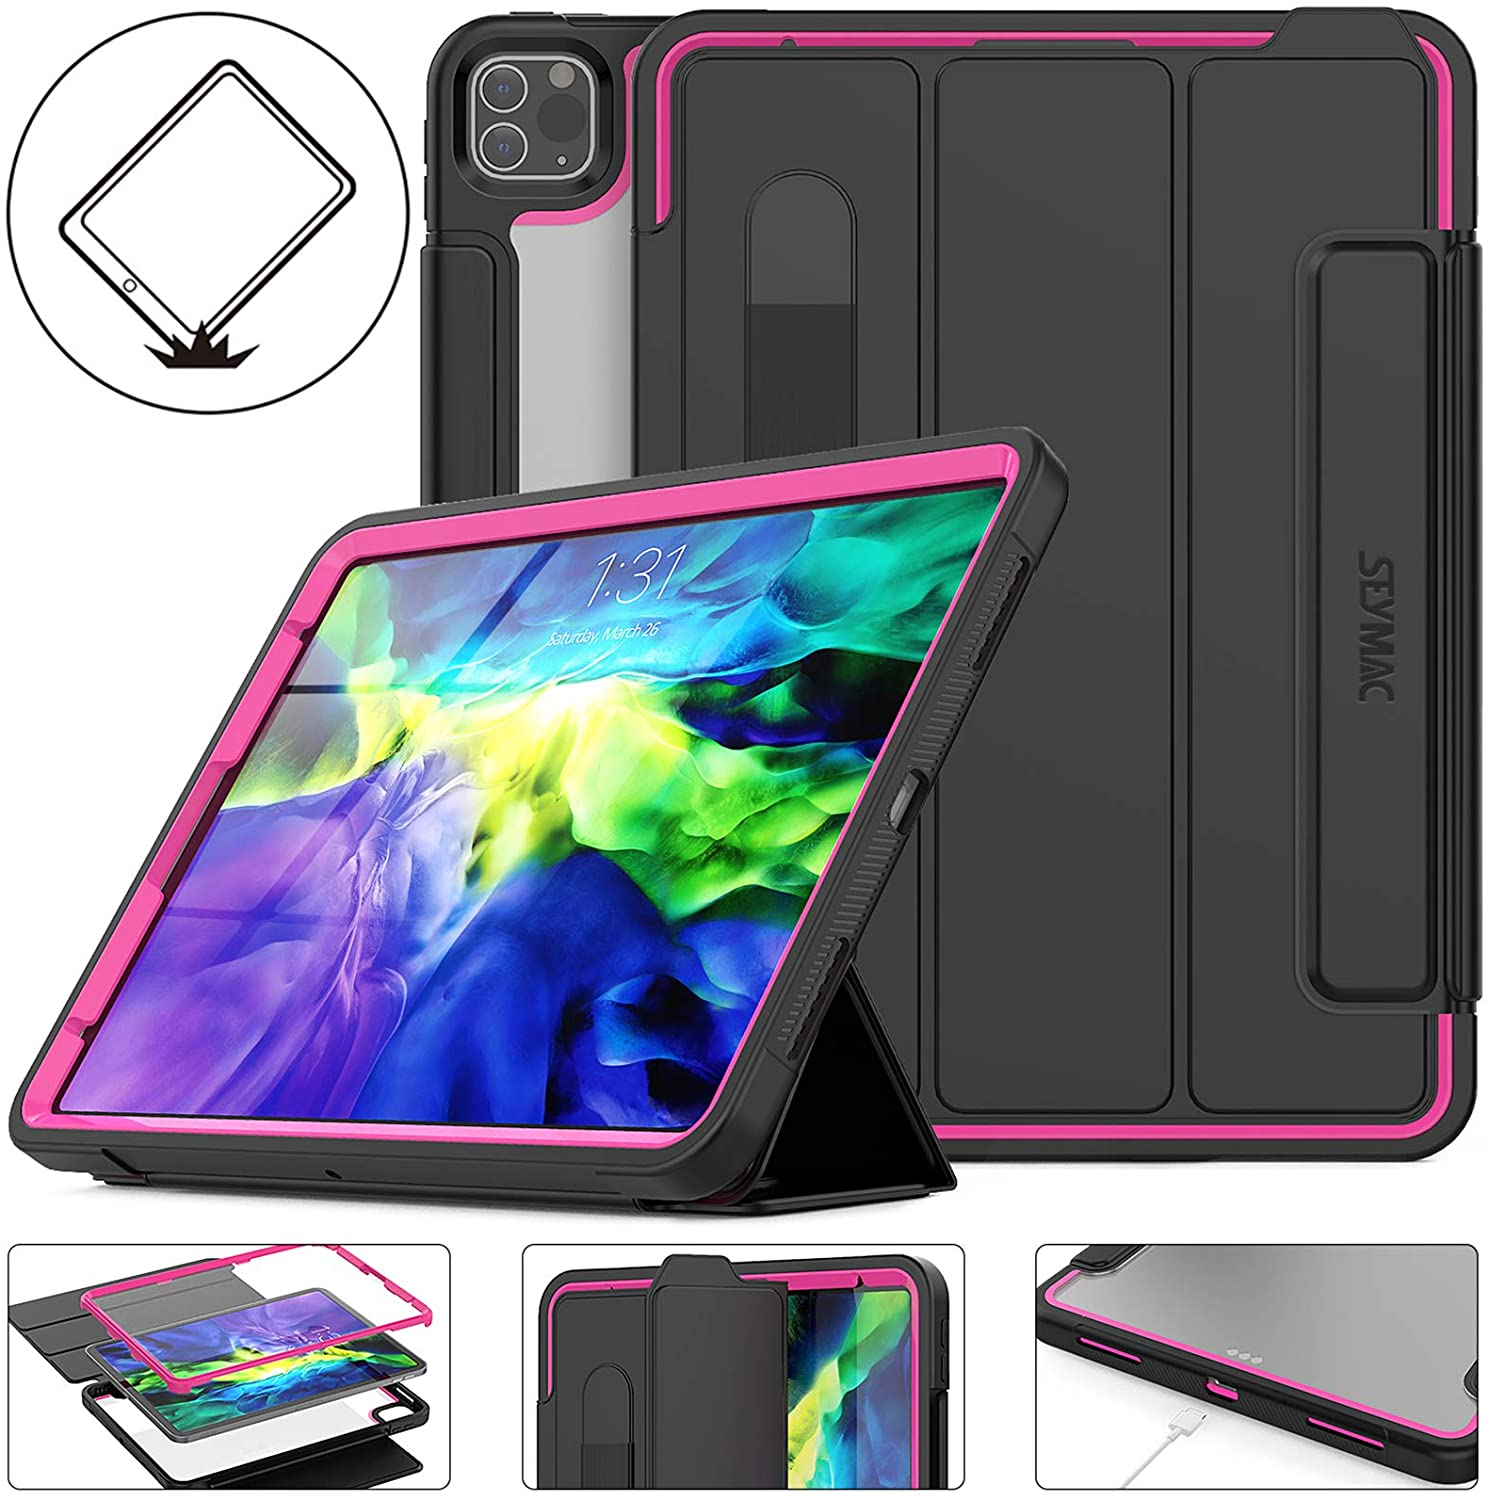 SEYMAC Stock Compatible for iPad Pro 11 Case, Shockproof Protective 11 inch Case Rugged Smart Cover Auto Sleep Wake with [Screen Protector] Stand and Clear Feature for Pro 11 2020 & 2018 (Rose/Black)